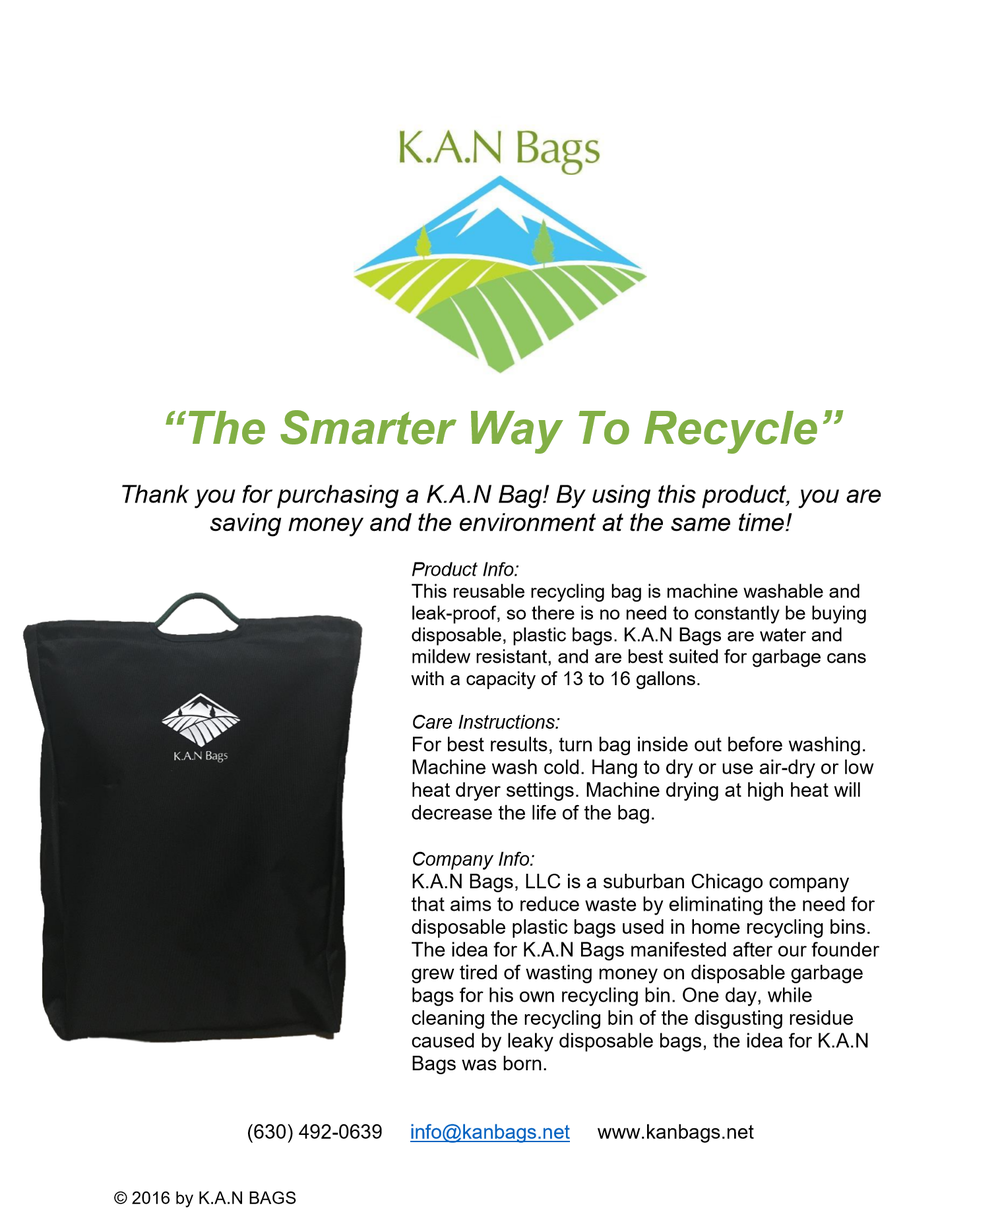 Product Info Sheet K.A.N Bags